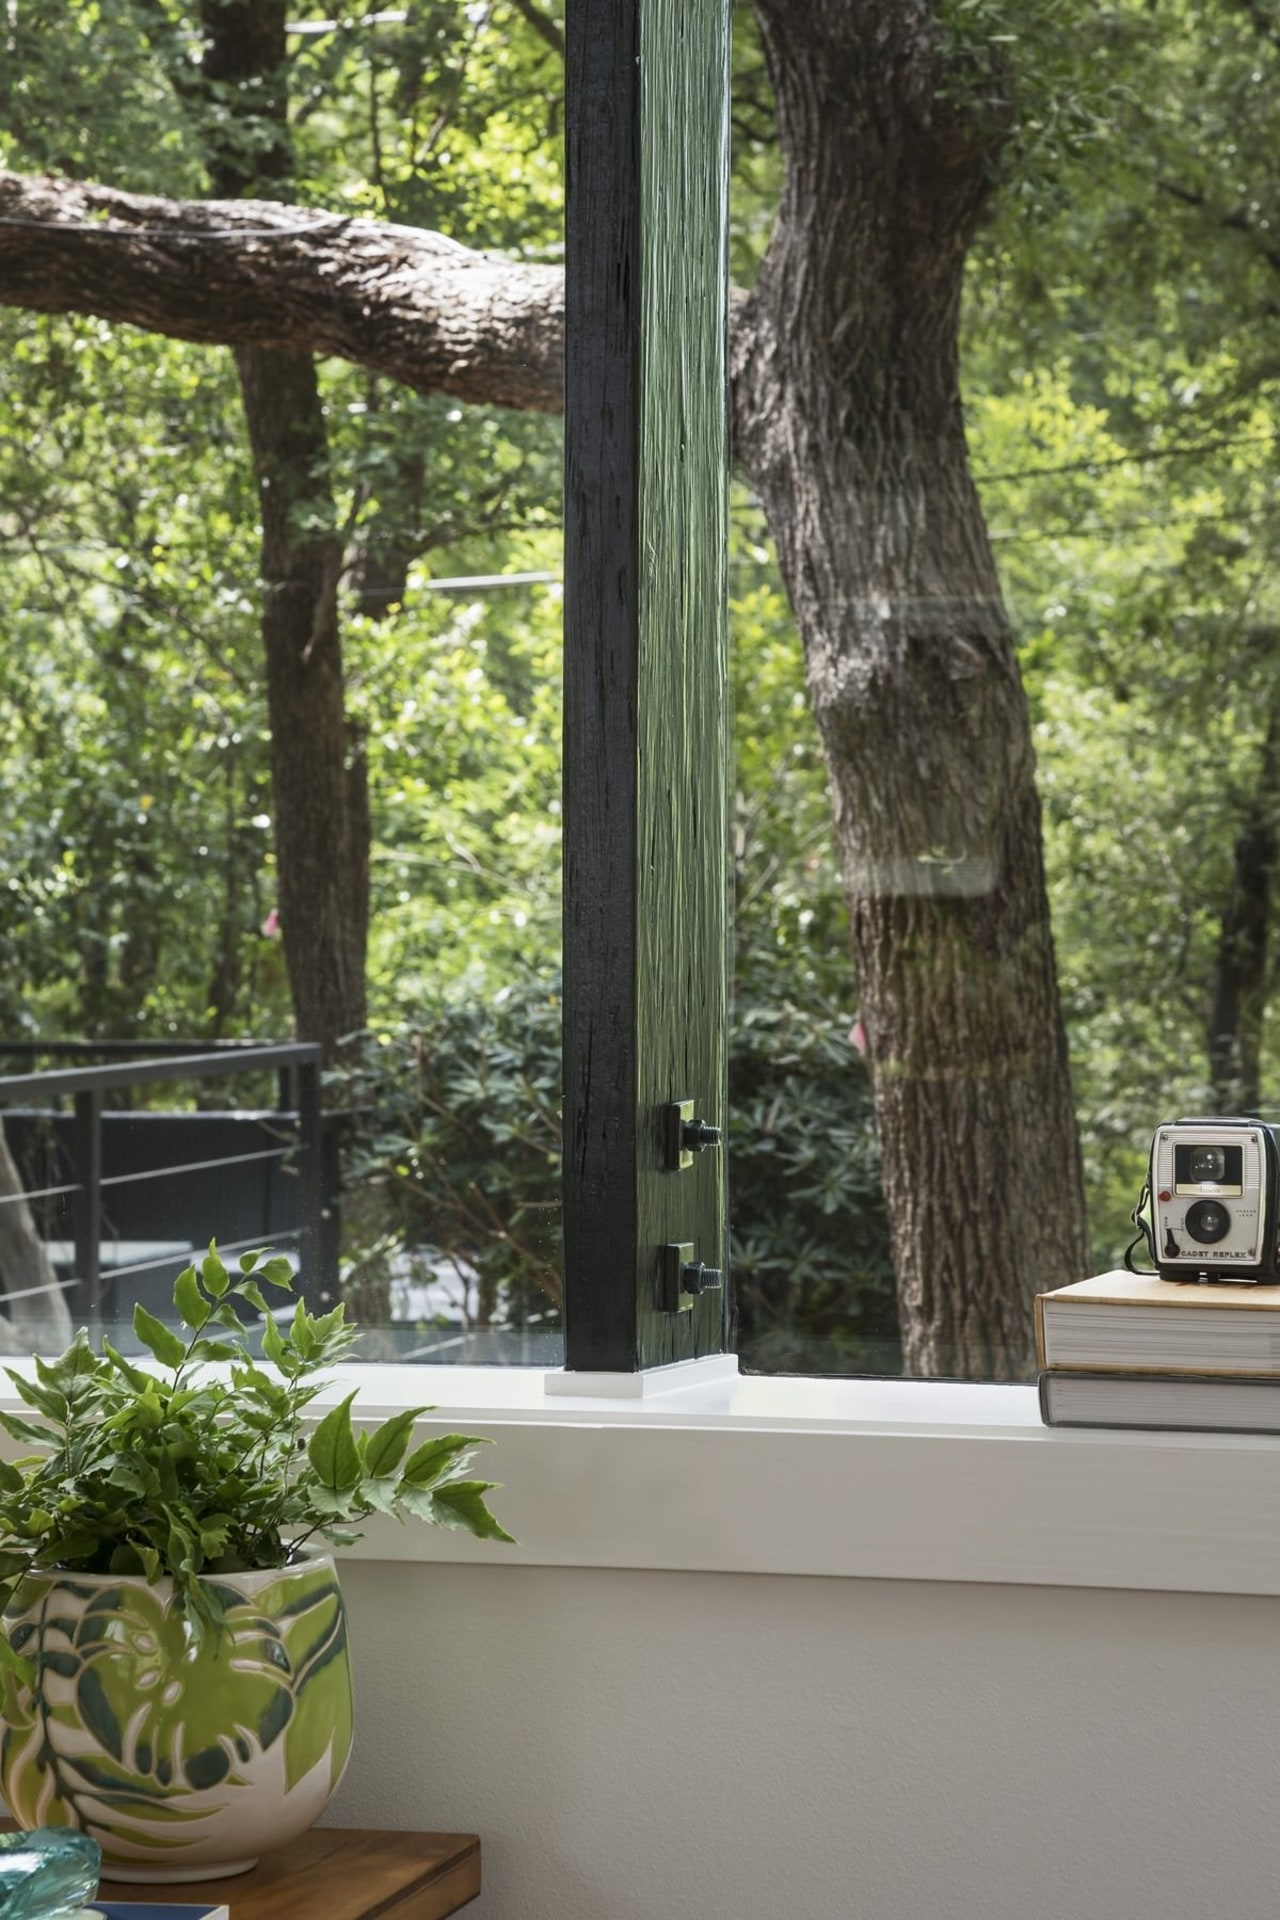 The beginning and the end – A tree home, house, outdoor structure, plant, porch, tree, window, wood, black